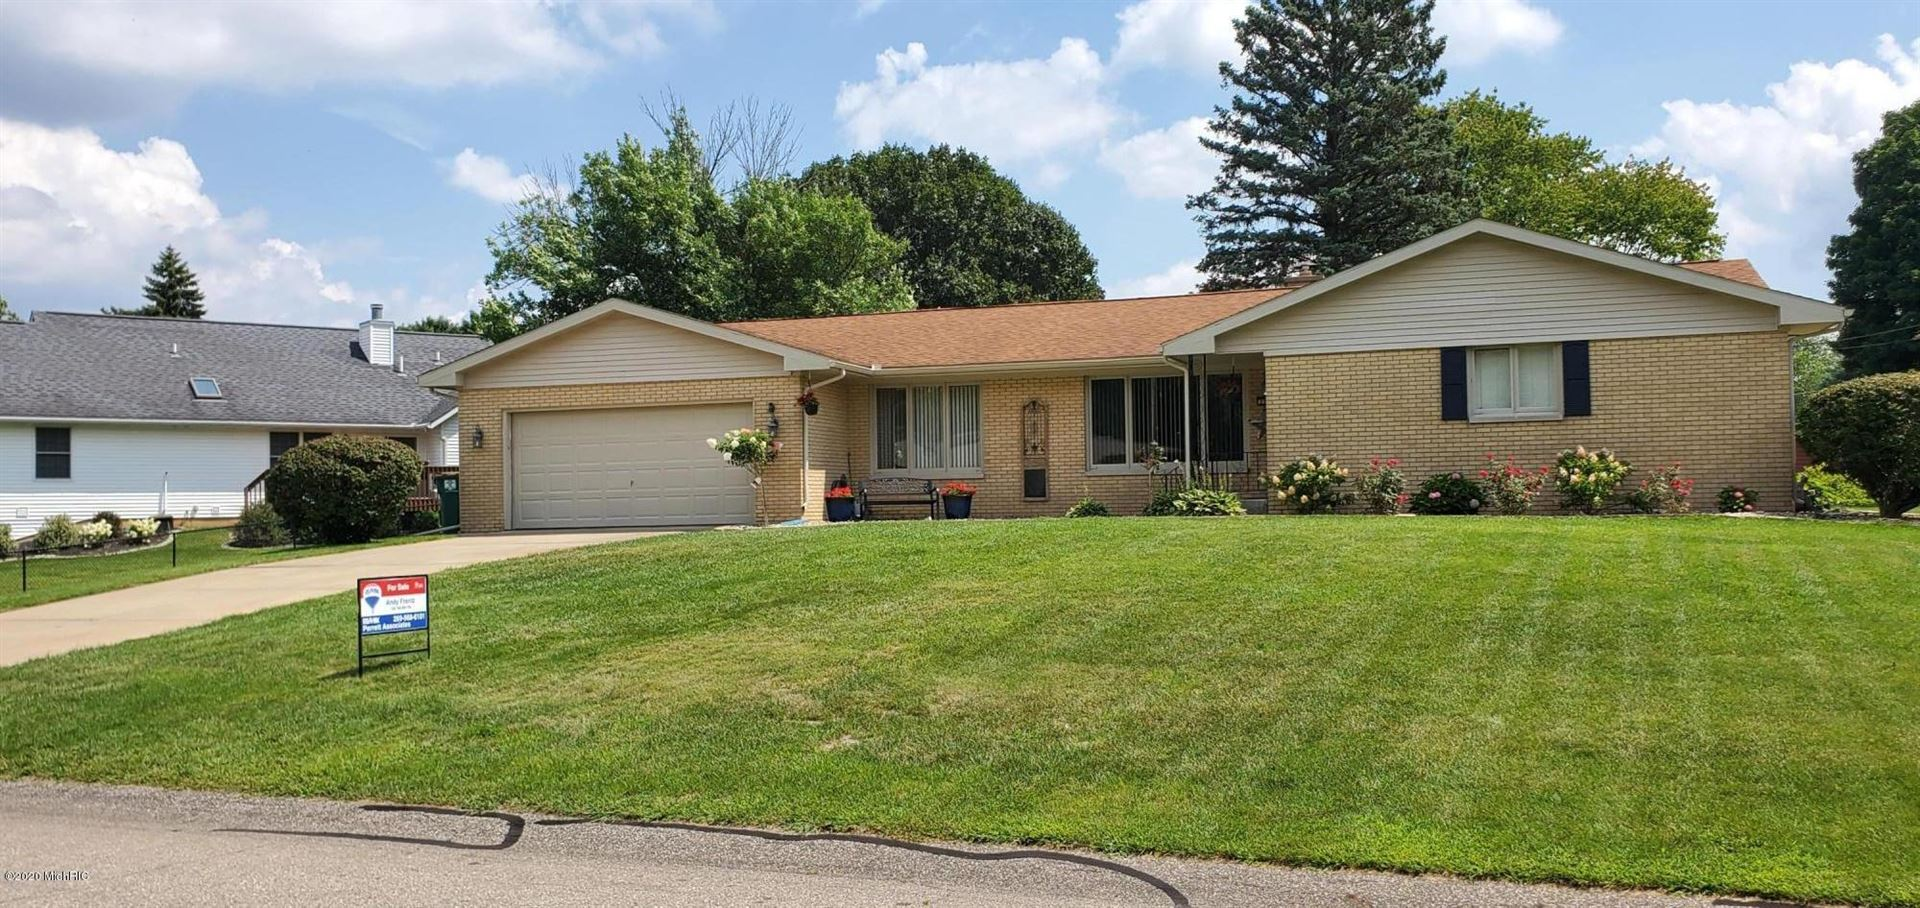 231 S Leland Drive, Battle Creek, MI 49015 - MLS#: 20032152